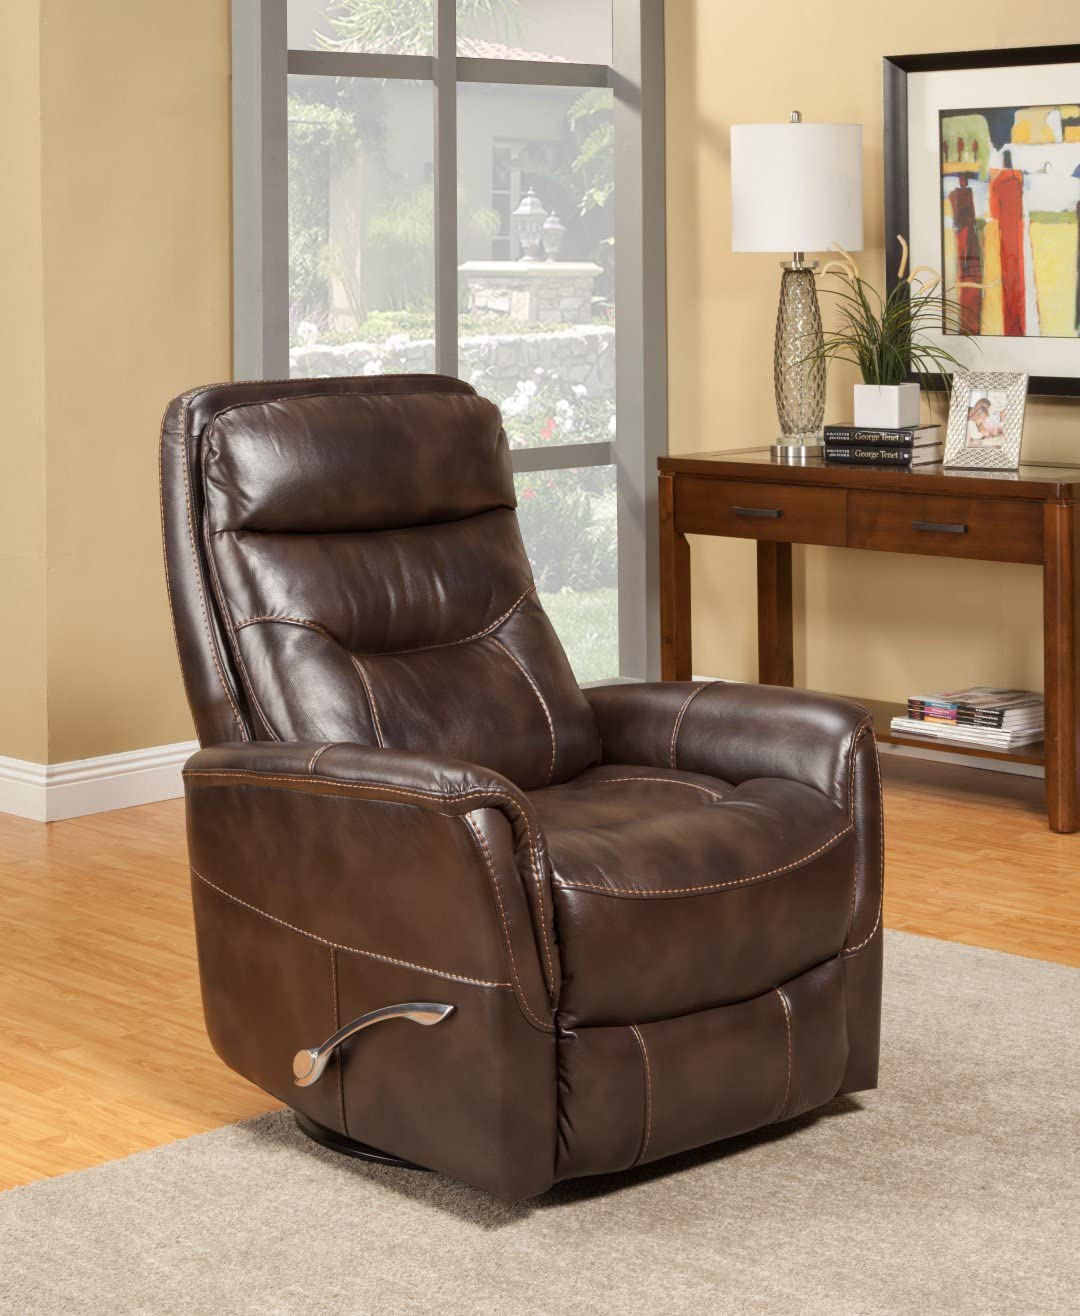 Oliver Pierce Colby Swivel Glider Recliner